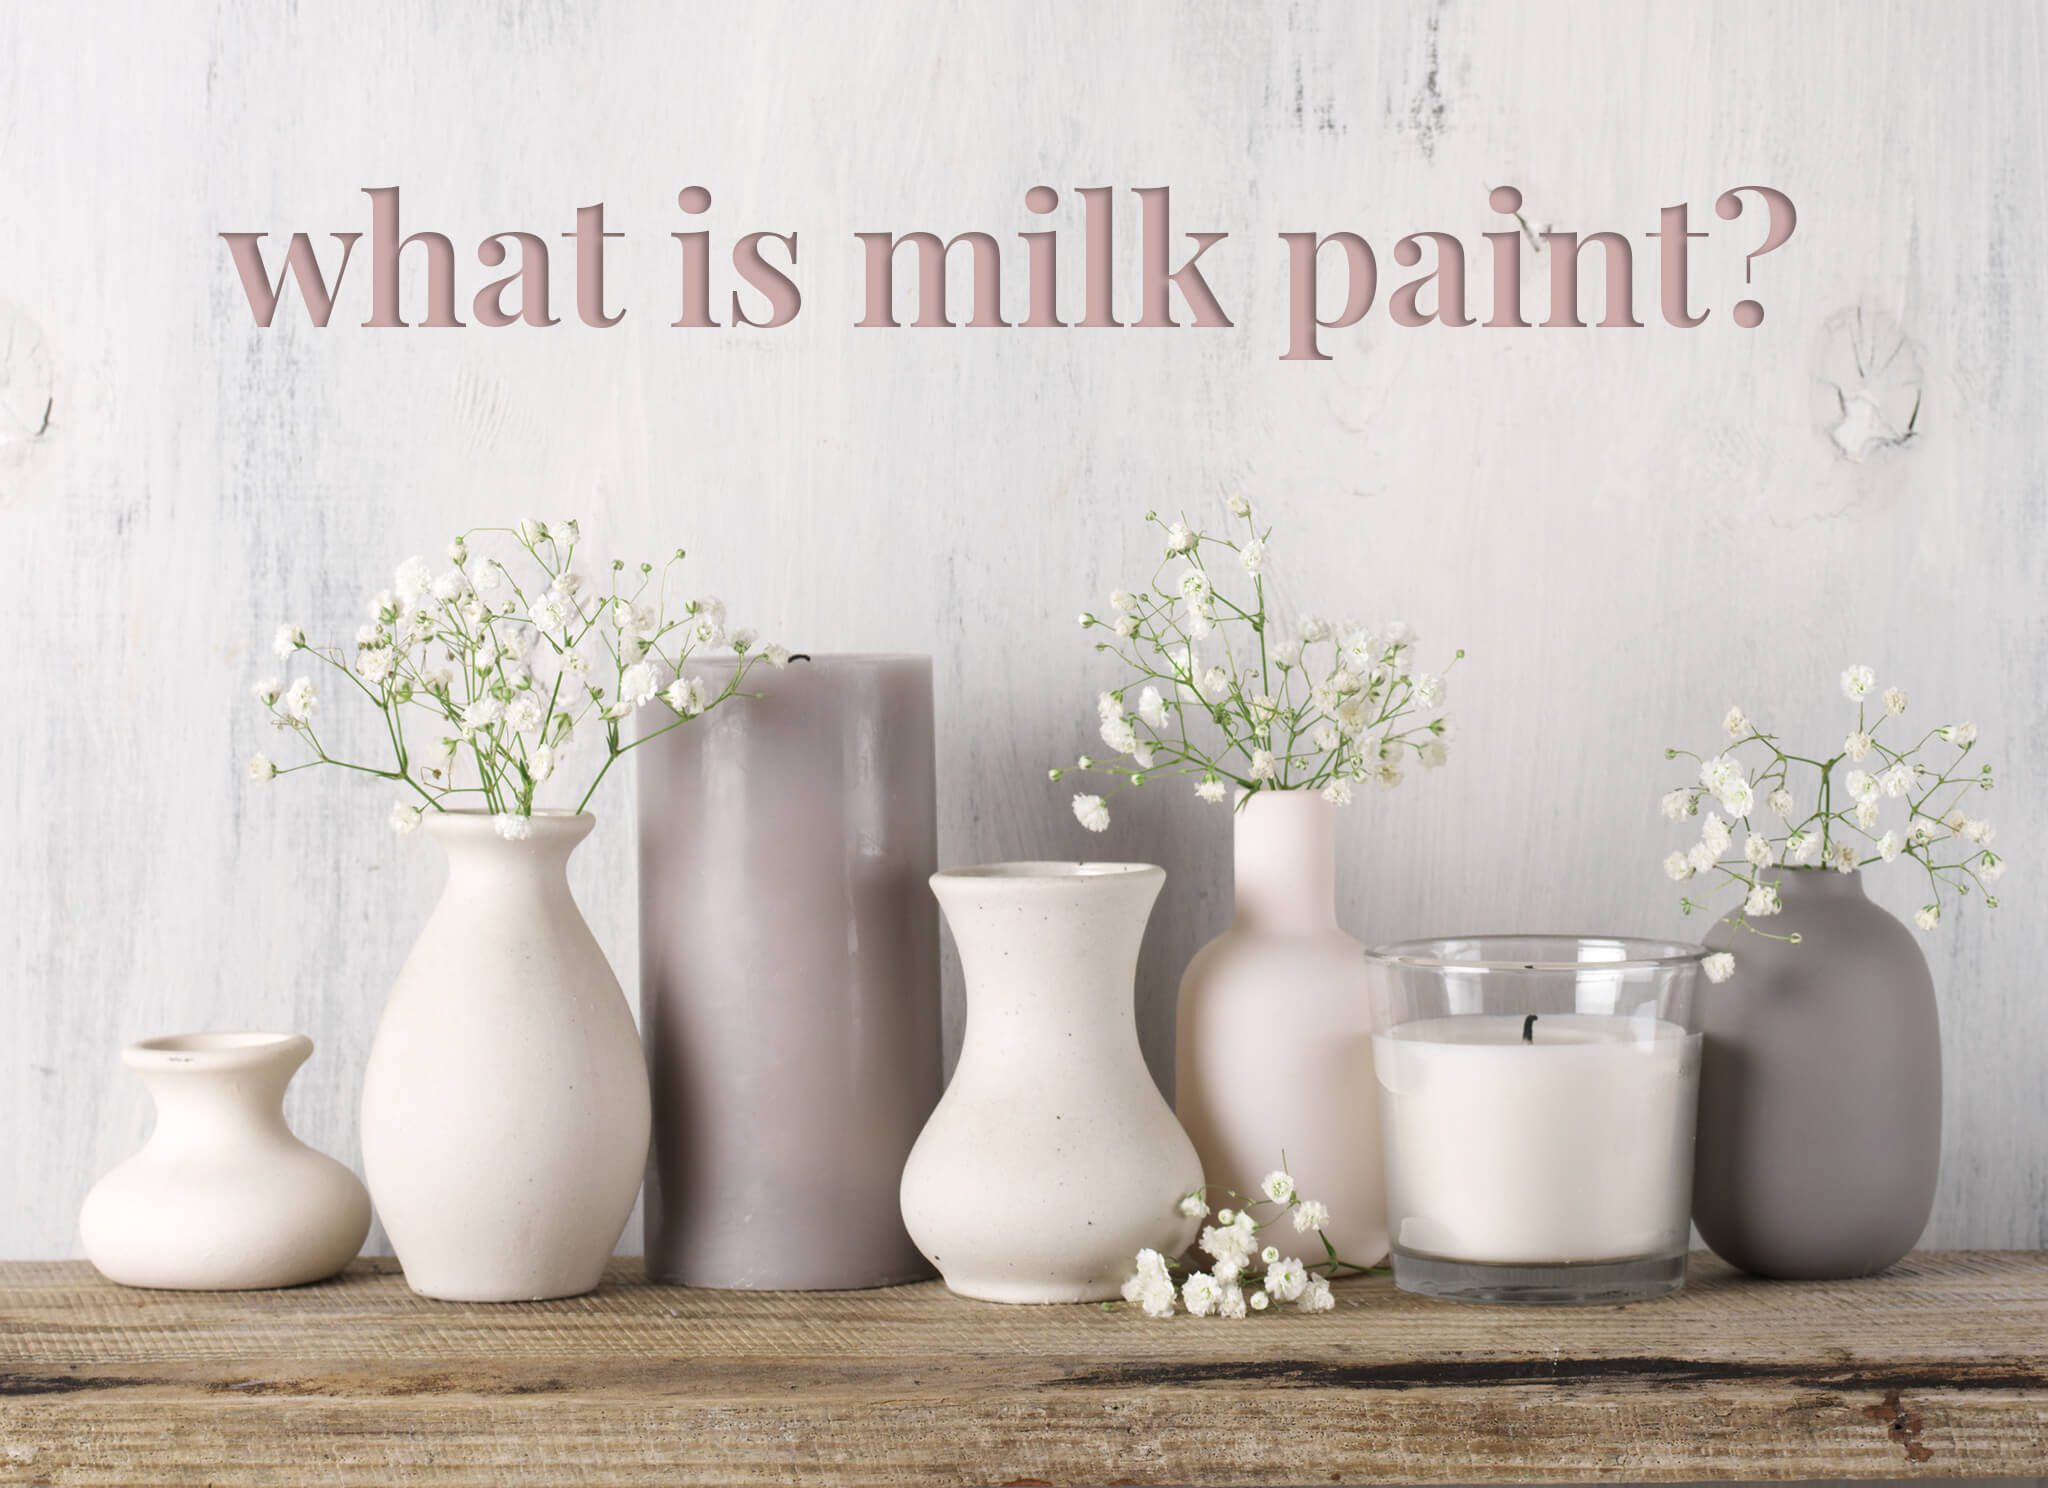 What is milk paint?